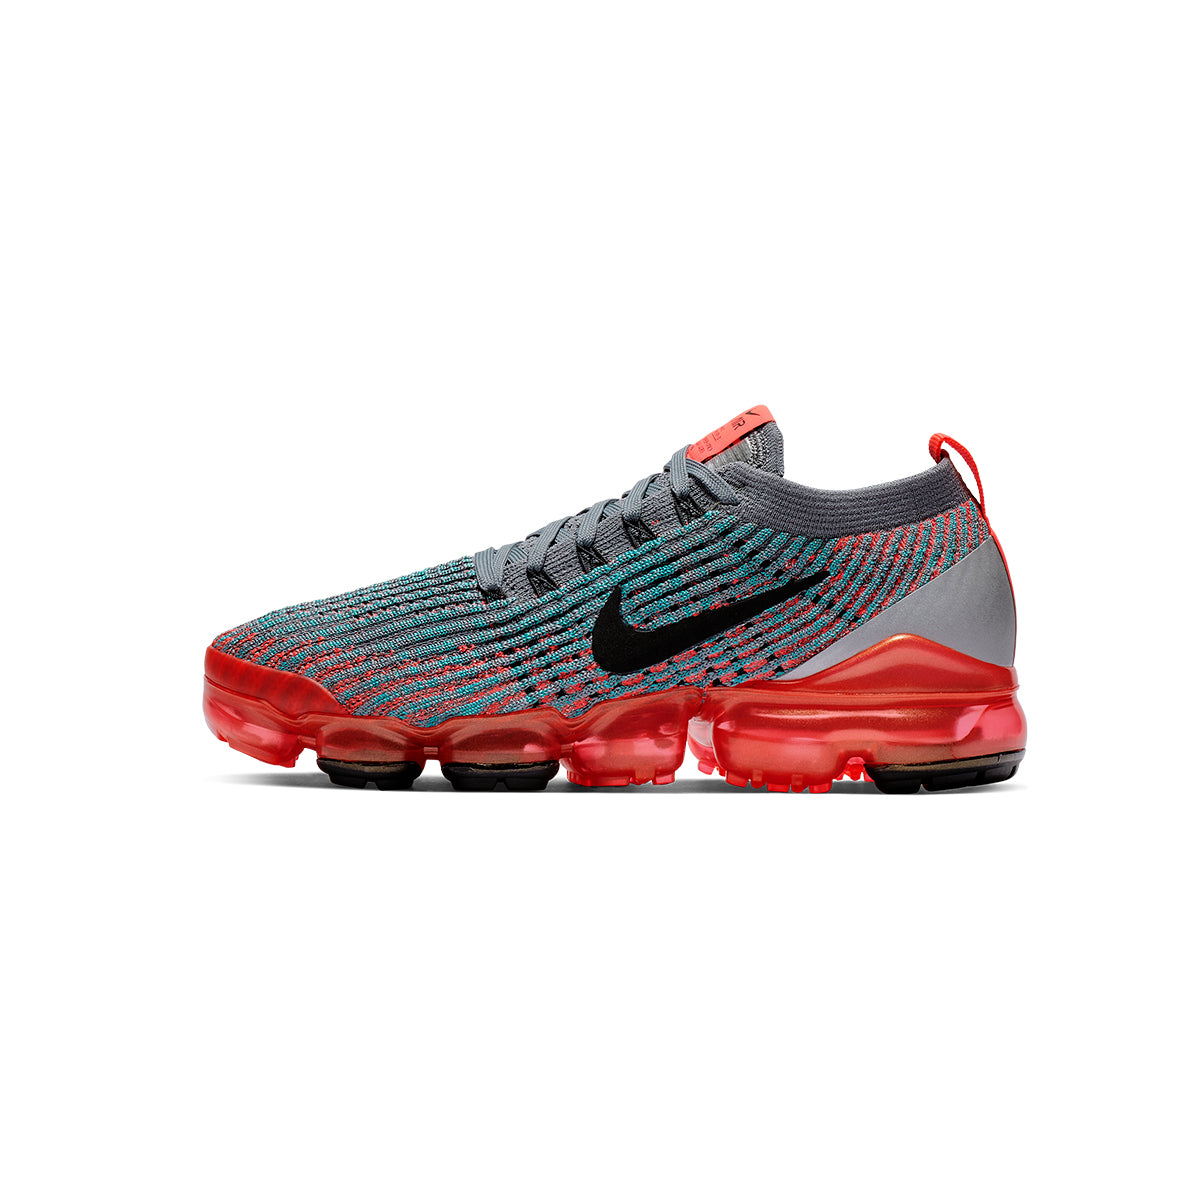 new style 30787 17e31 ConceptsIntl | Nike Womens Air Vapormax Flyknit 3 (Flash ...